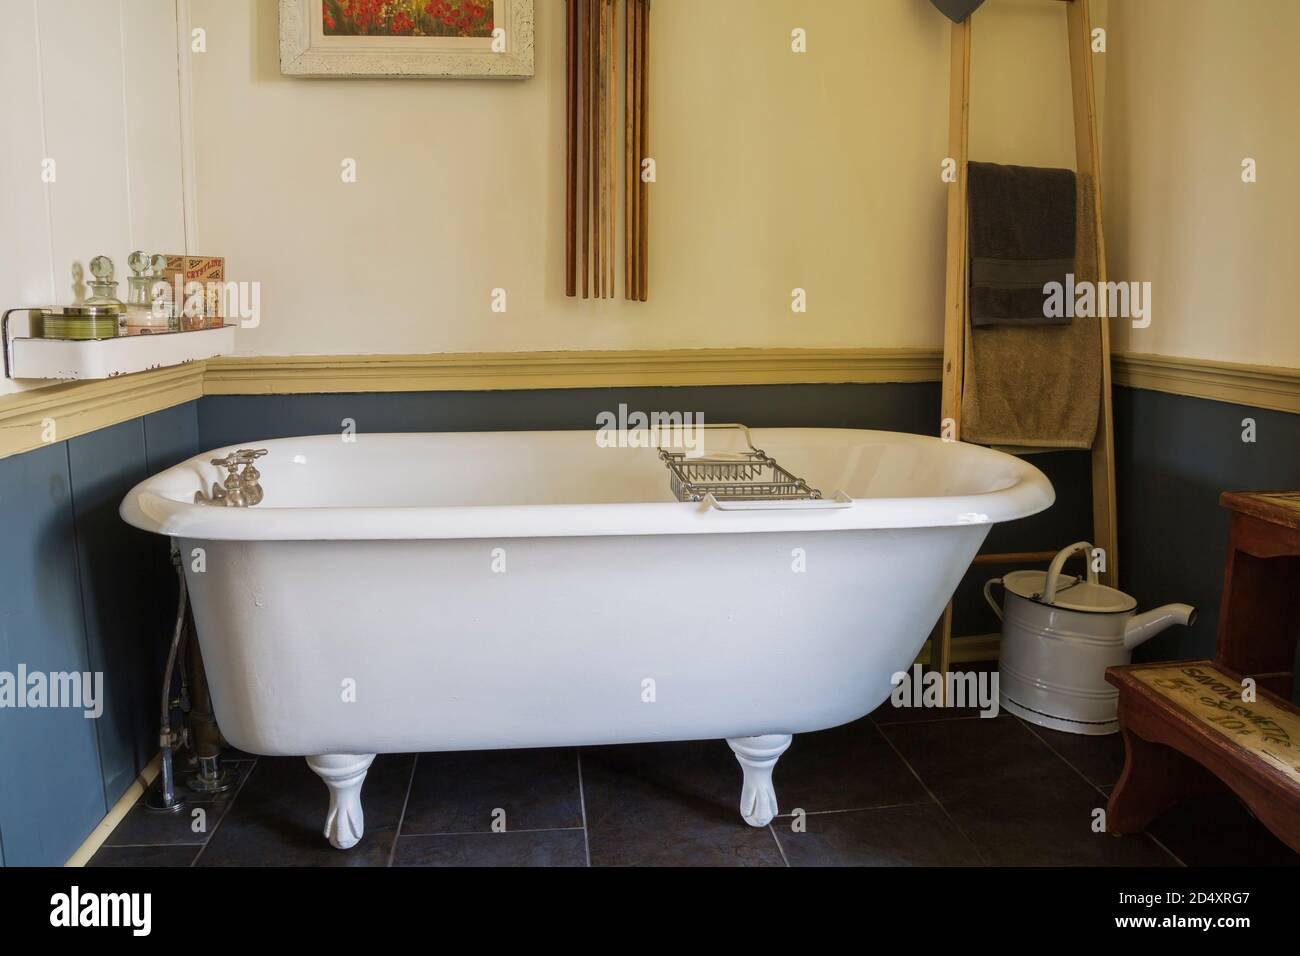 White Claw Foot Bathtub In Main Bathroom With Black Ceramic Tile Floor Inside An Old 1841 Cottage Style Fieldstone House Stock Photo Alamy